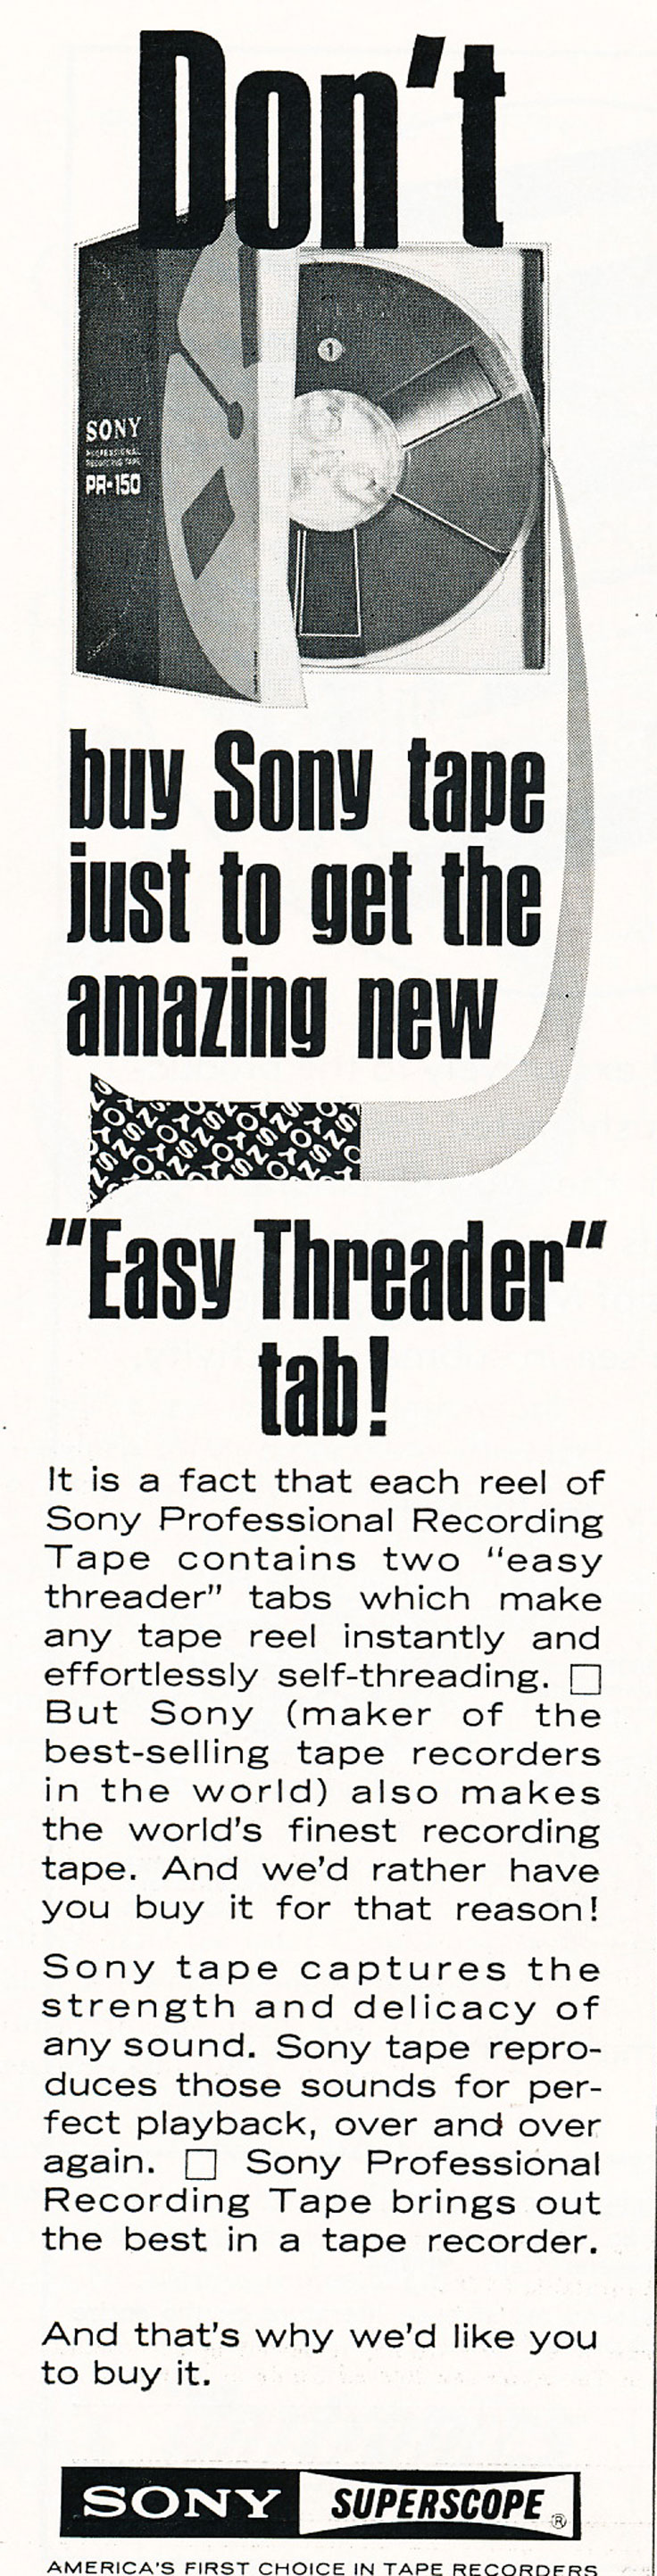 1967 ad for the Sony reel recording tape in Reel2ReelTexas.com's vintage recording collection